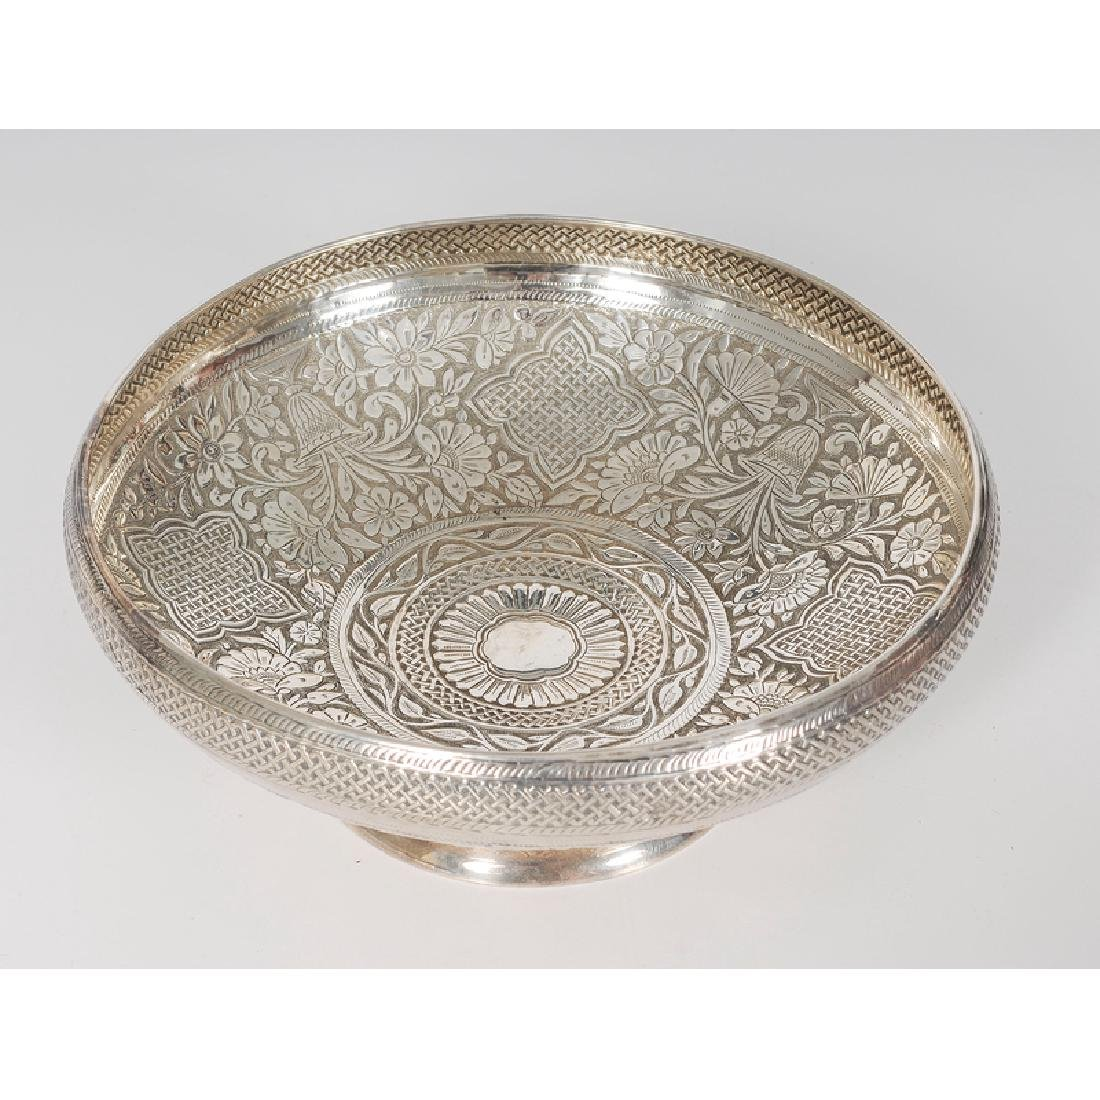 Gorham Aesthetic Movement Sterling Compote - 2